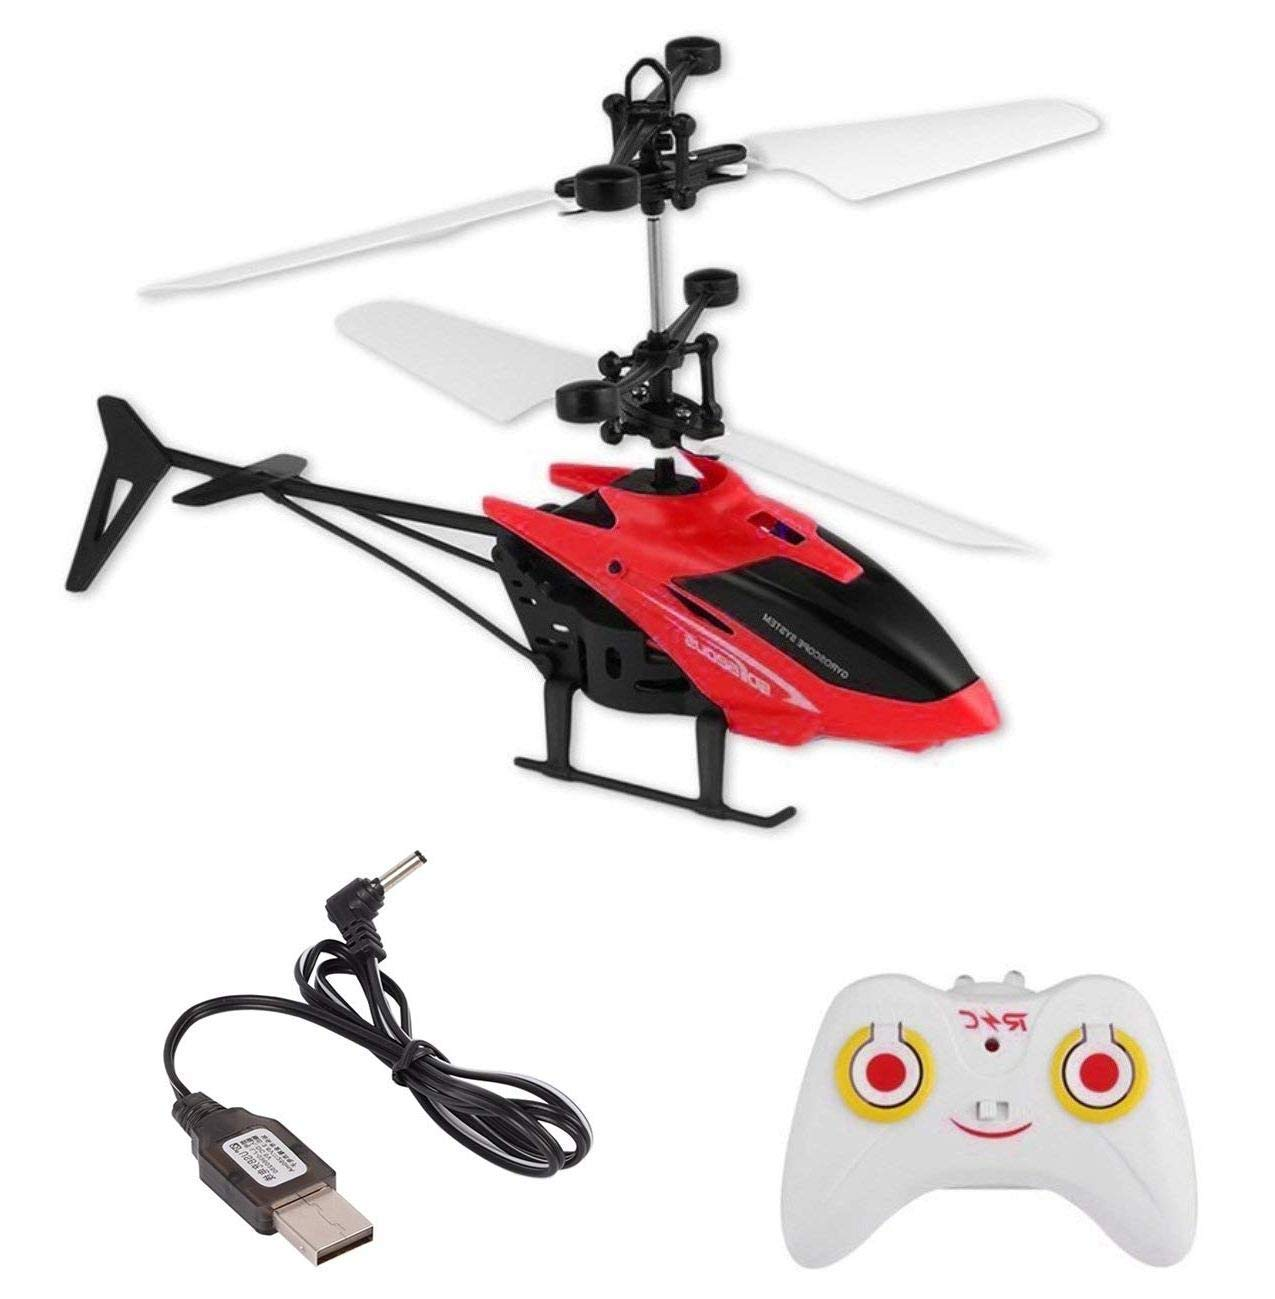 2 In 1 Sensor Induction And Remote Induction Control Multifunction Flying Helicopter Move Only  |Ups And Down| No |Left And Right| Helicopter Toys For Boys And Kids